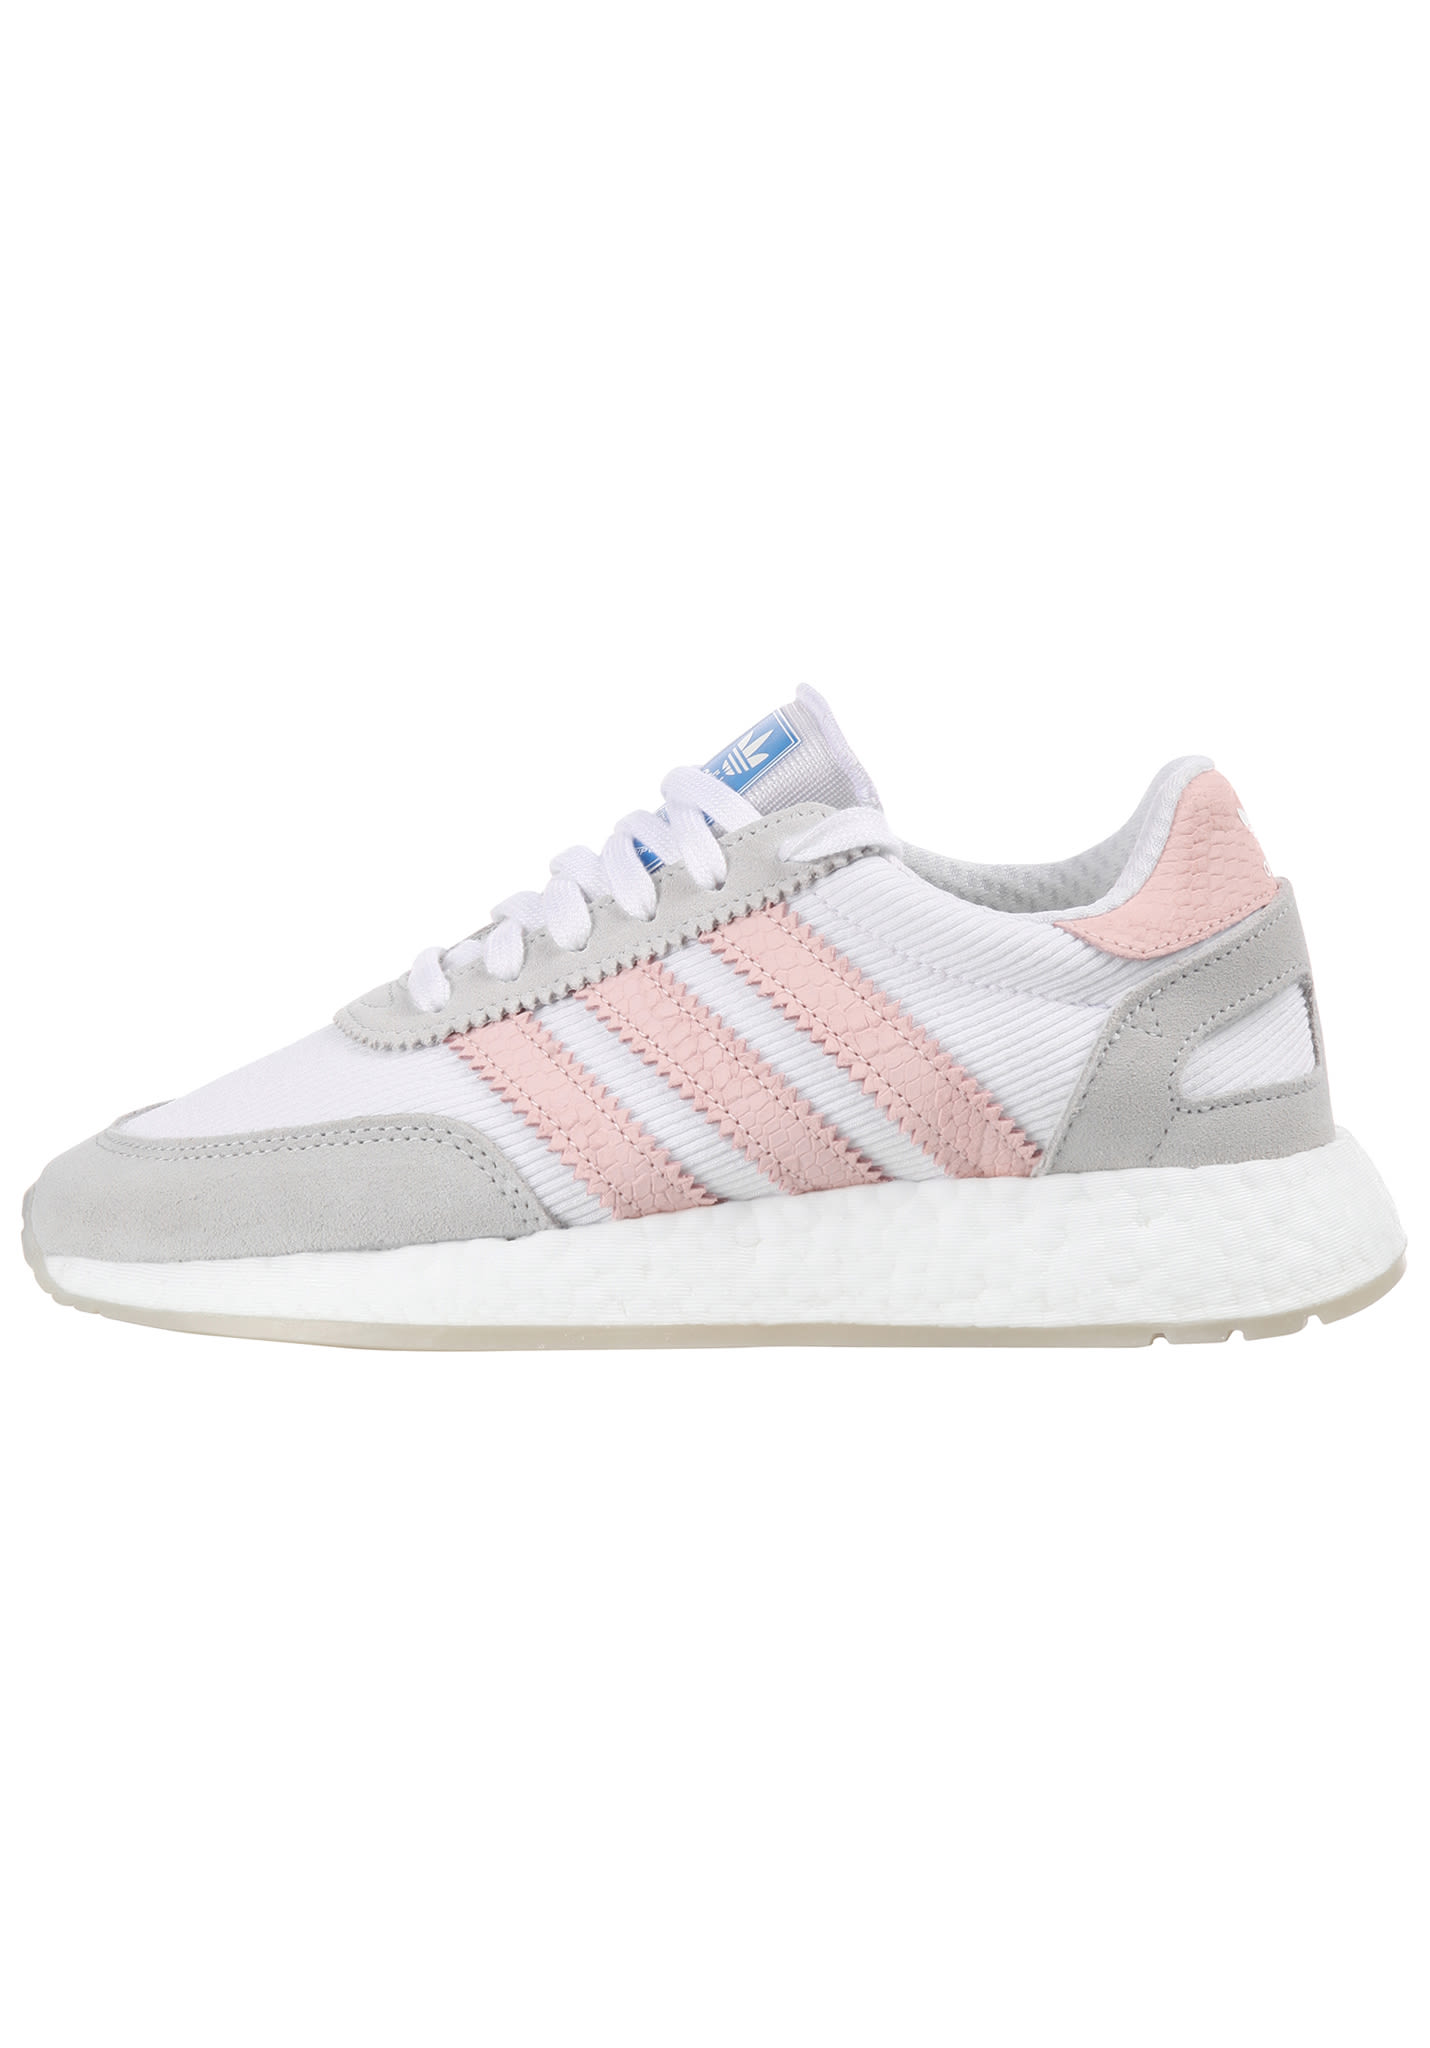 wholesale price affordable price classic styles ADIDAS ORIGINALS I-5923 - Sneakers for Women - White